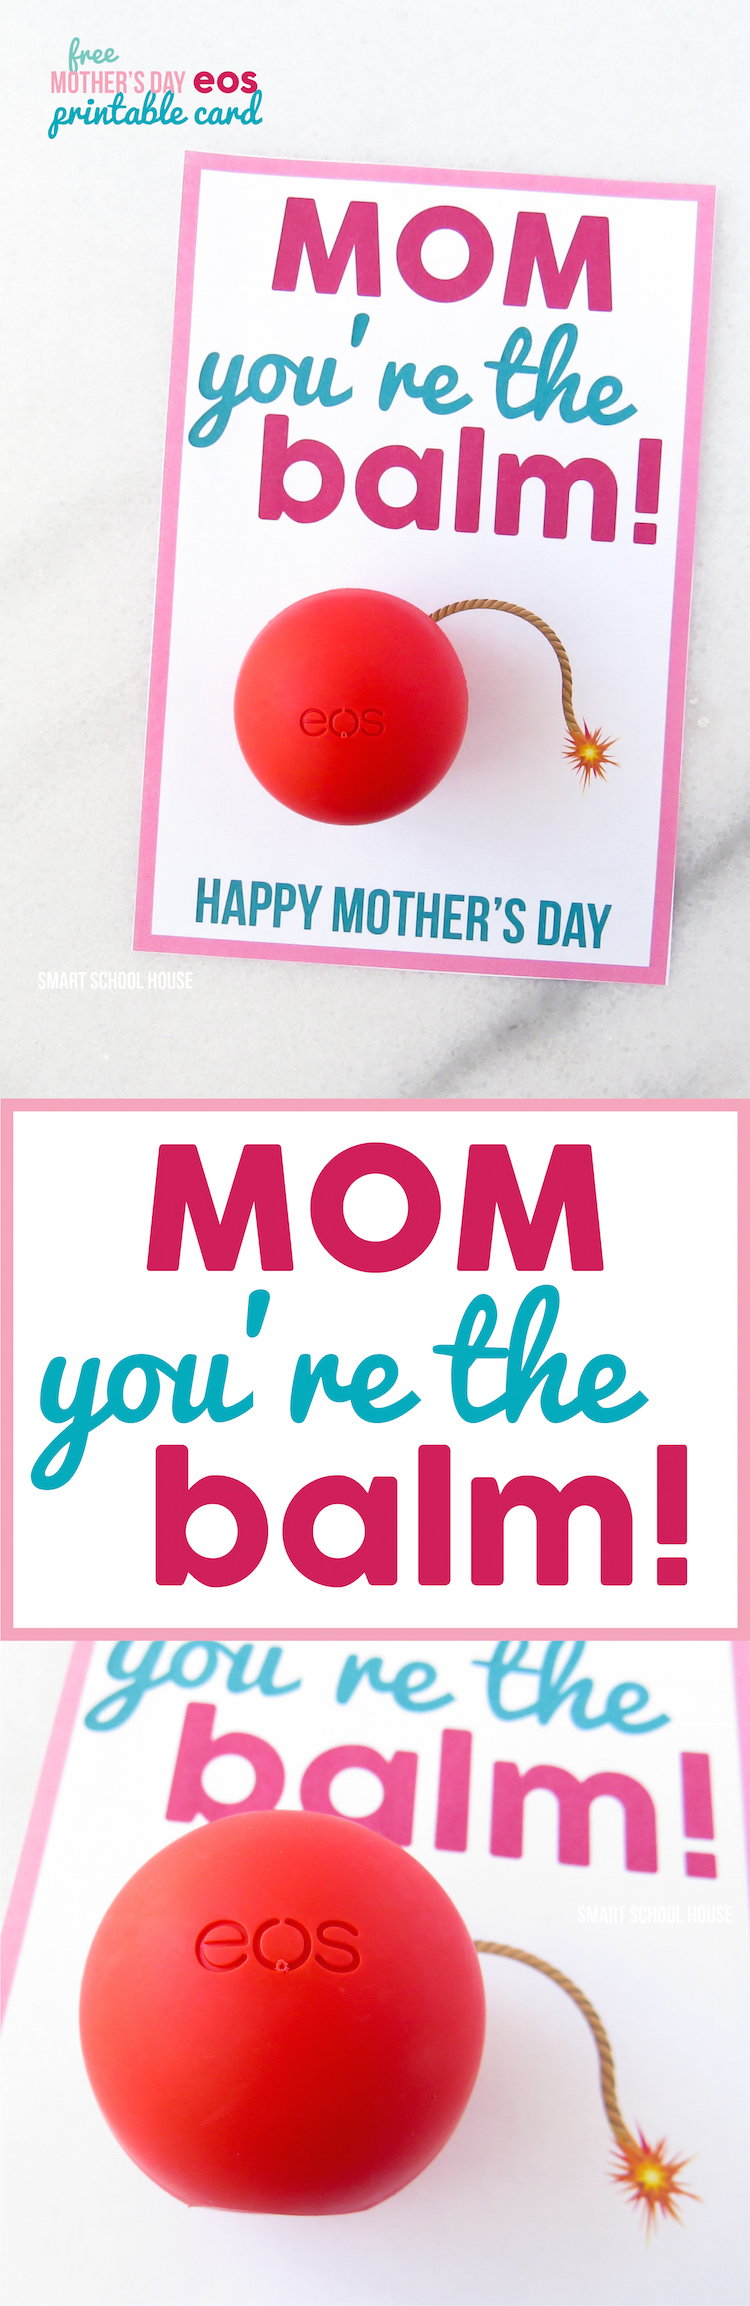 image regarding You're the Balm Free Printable referred to as Mother Youre the Balm - A Do-it-yourself Moms Working day Card